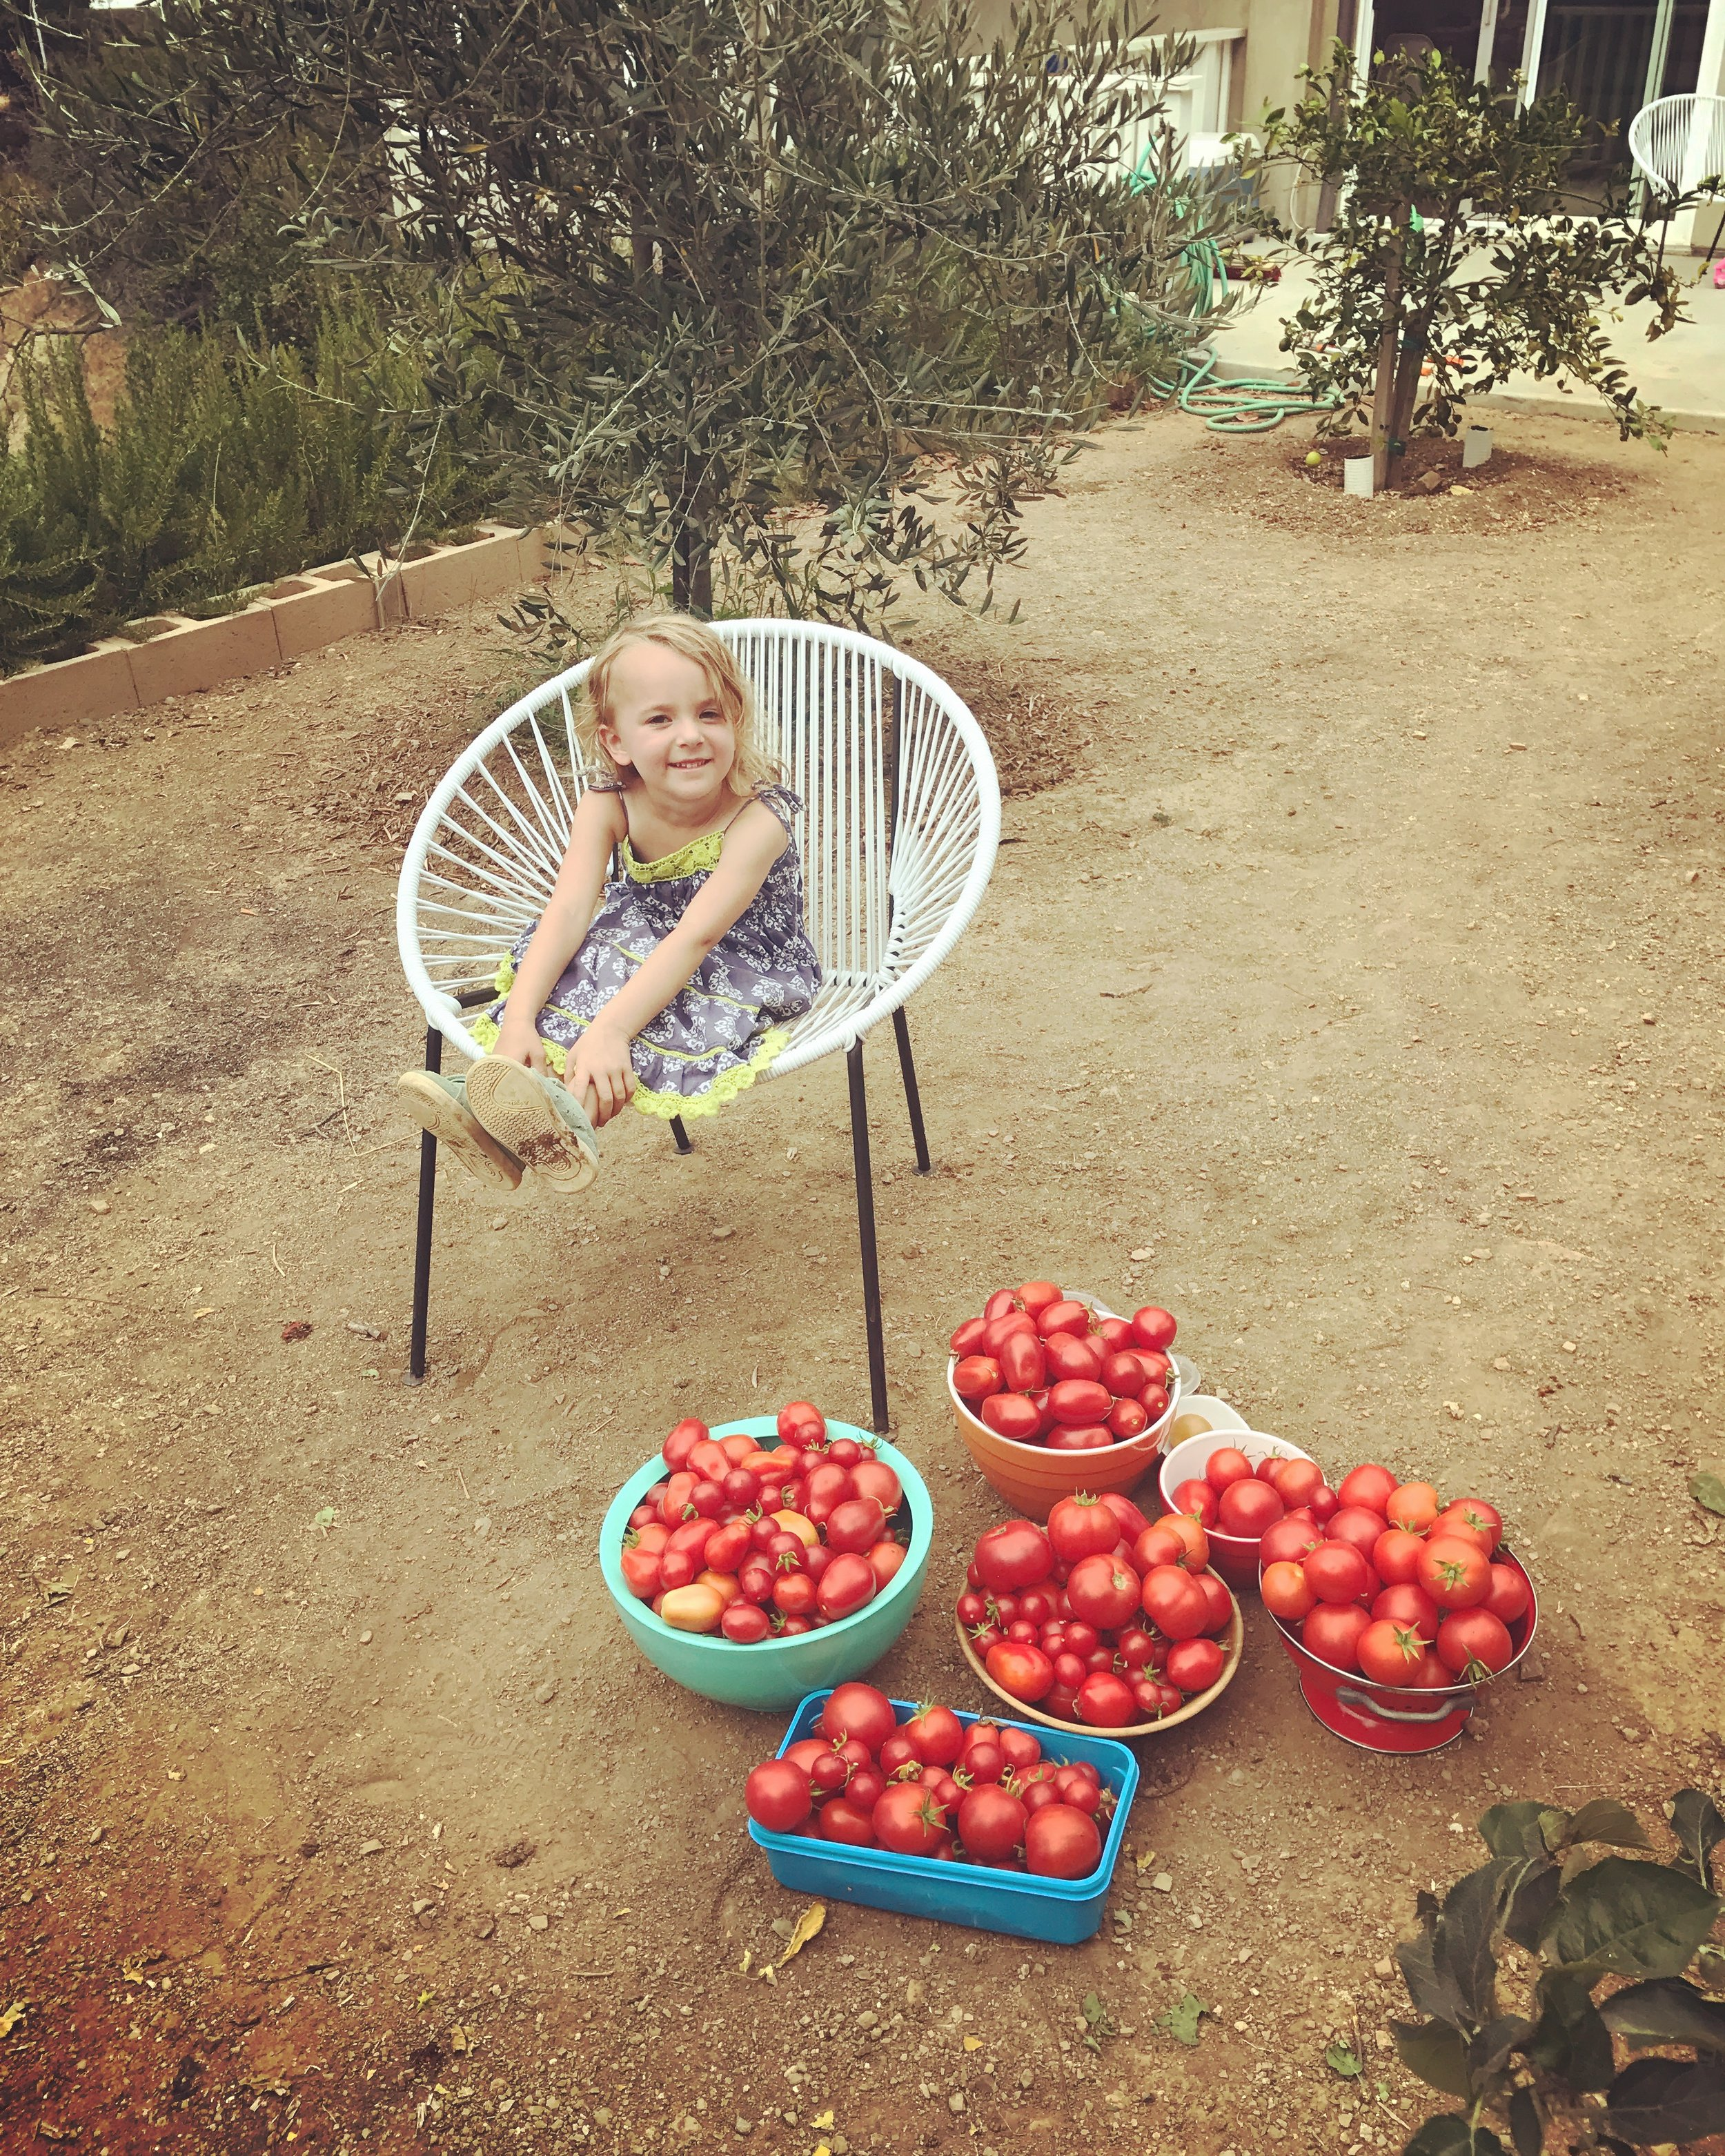 We picked this many tomatoes every week!